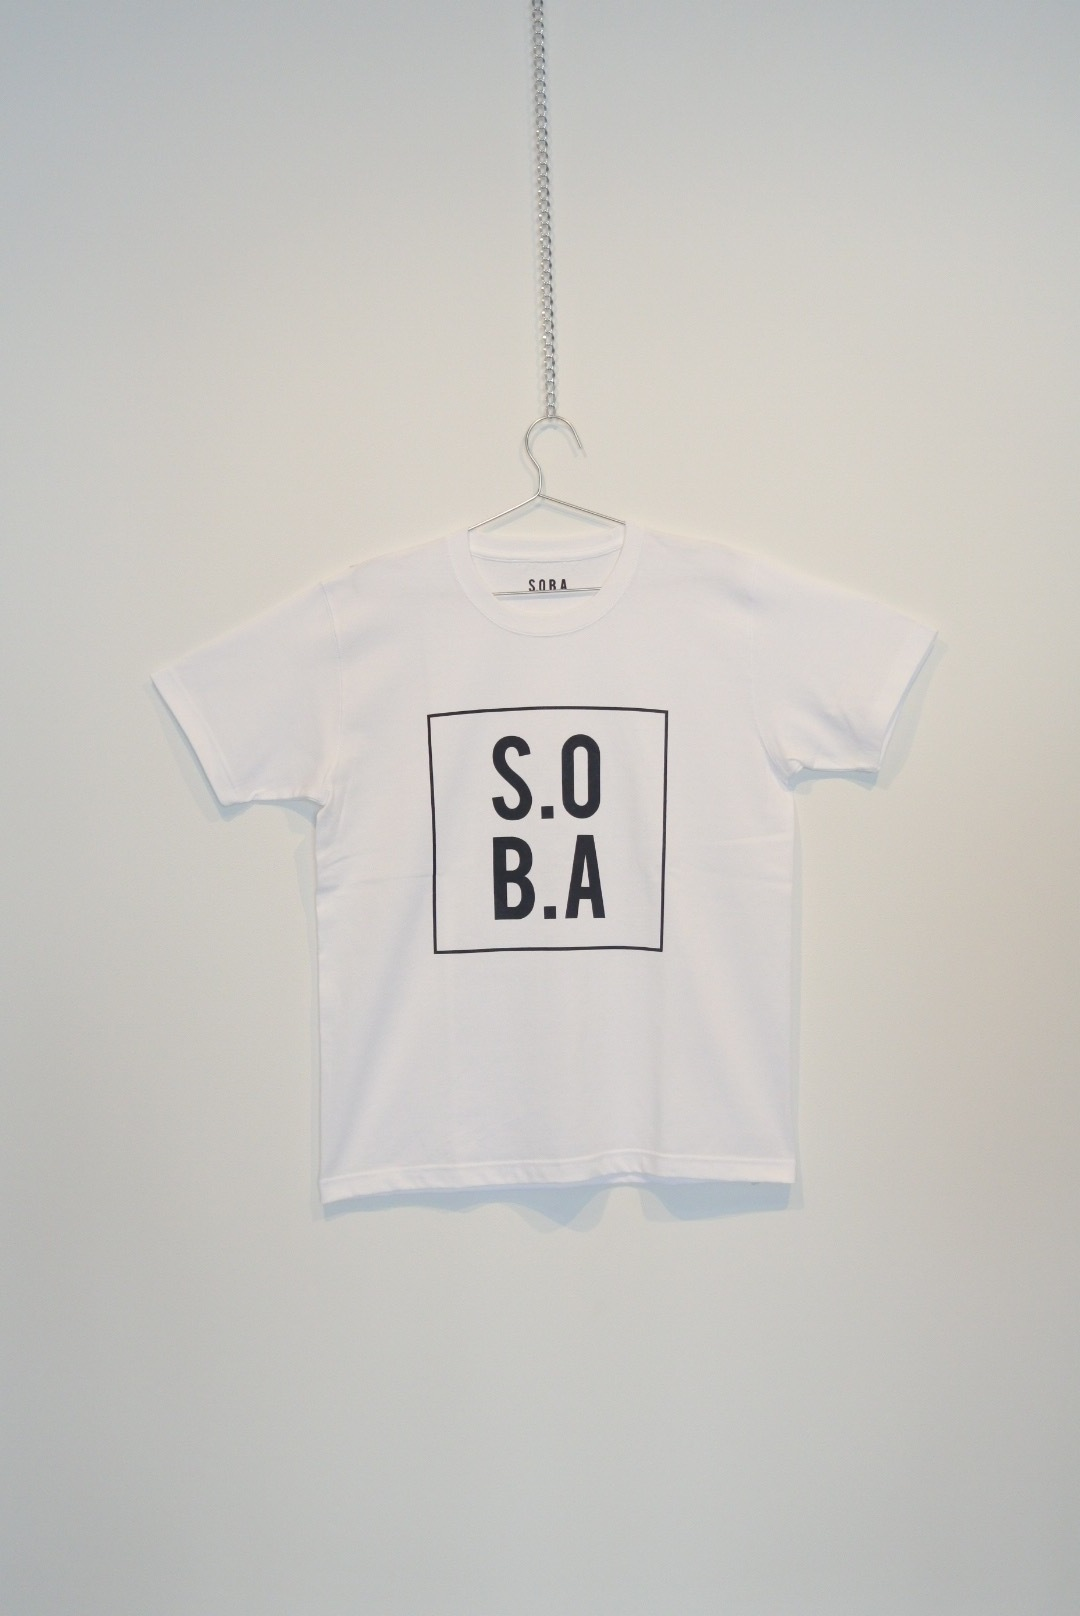 THE MUSIC DAYで大野智さん着用の衣装・S.O.B.A FRONT BOX PRINT T-SHIRT